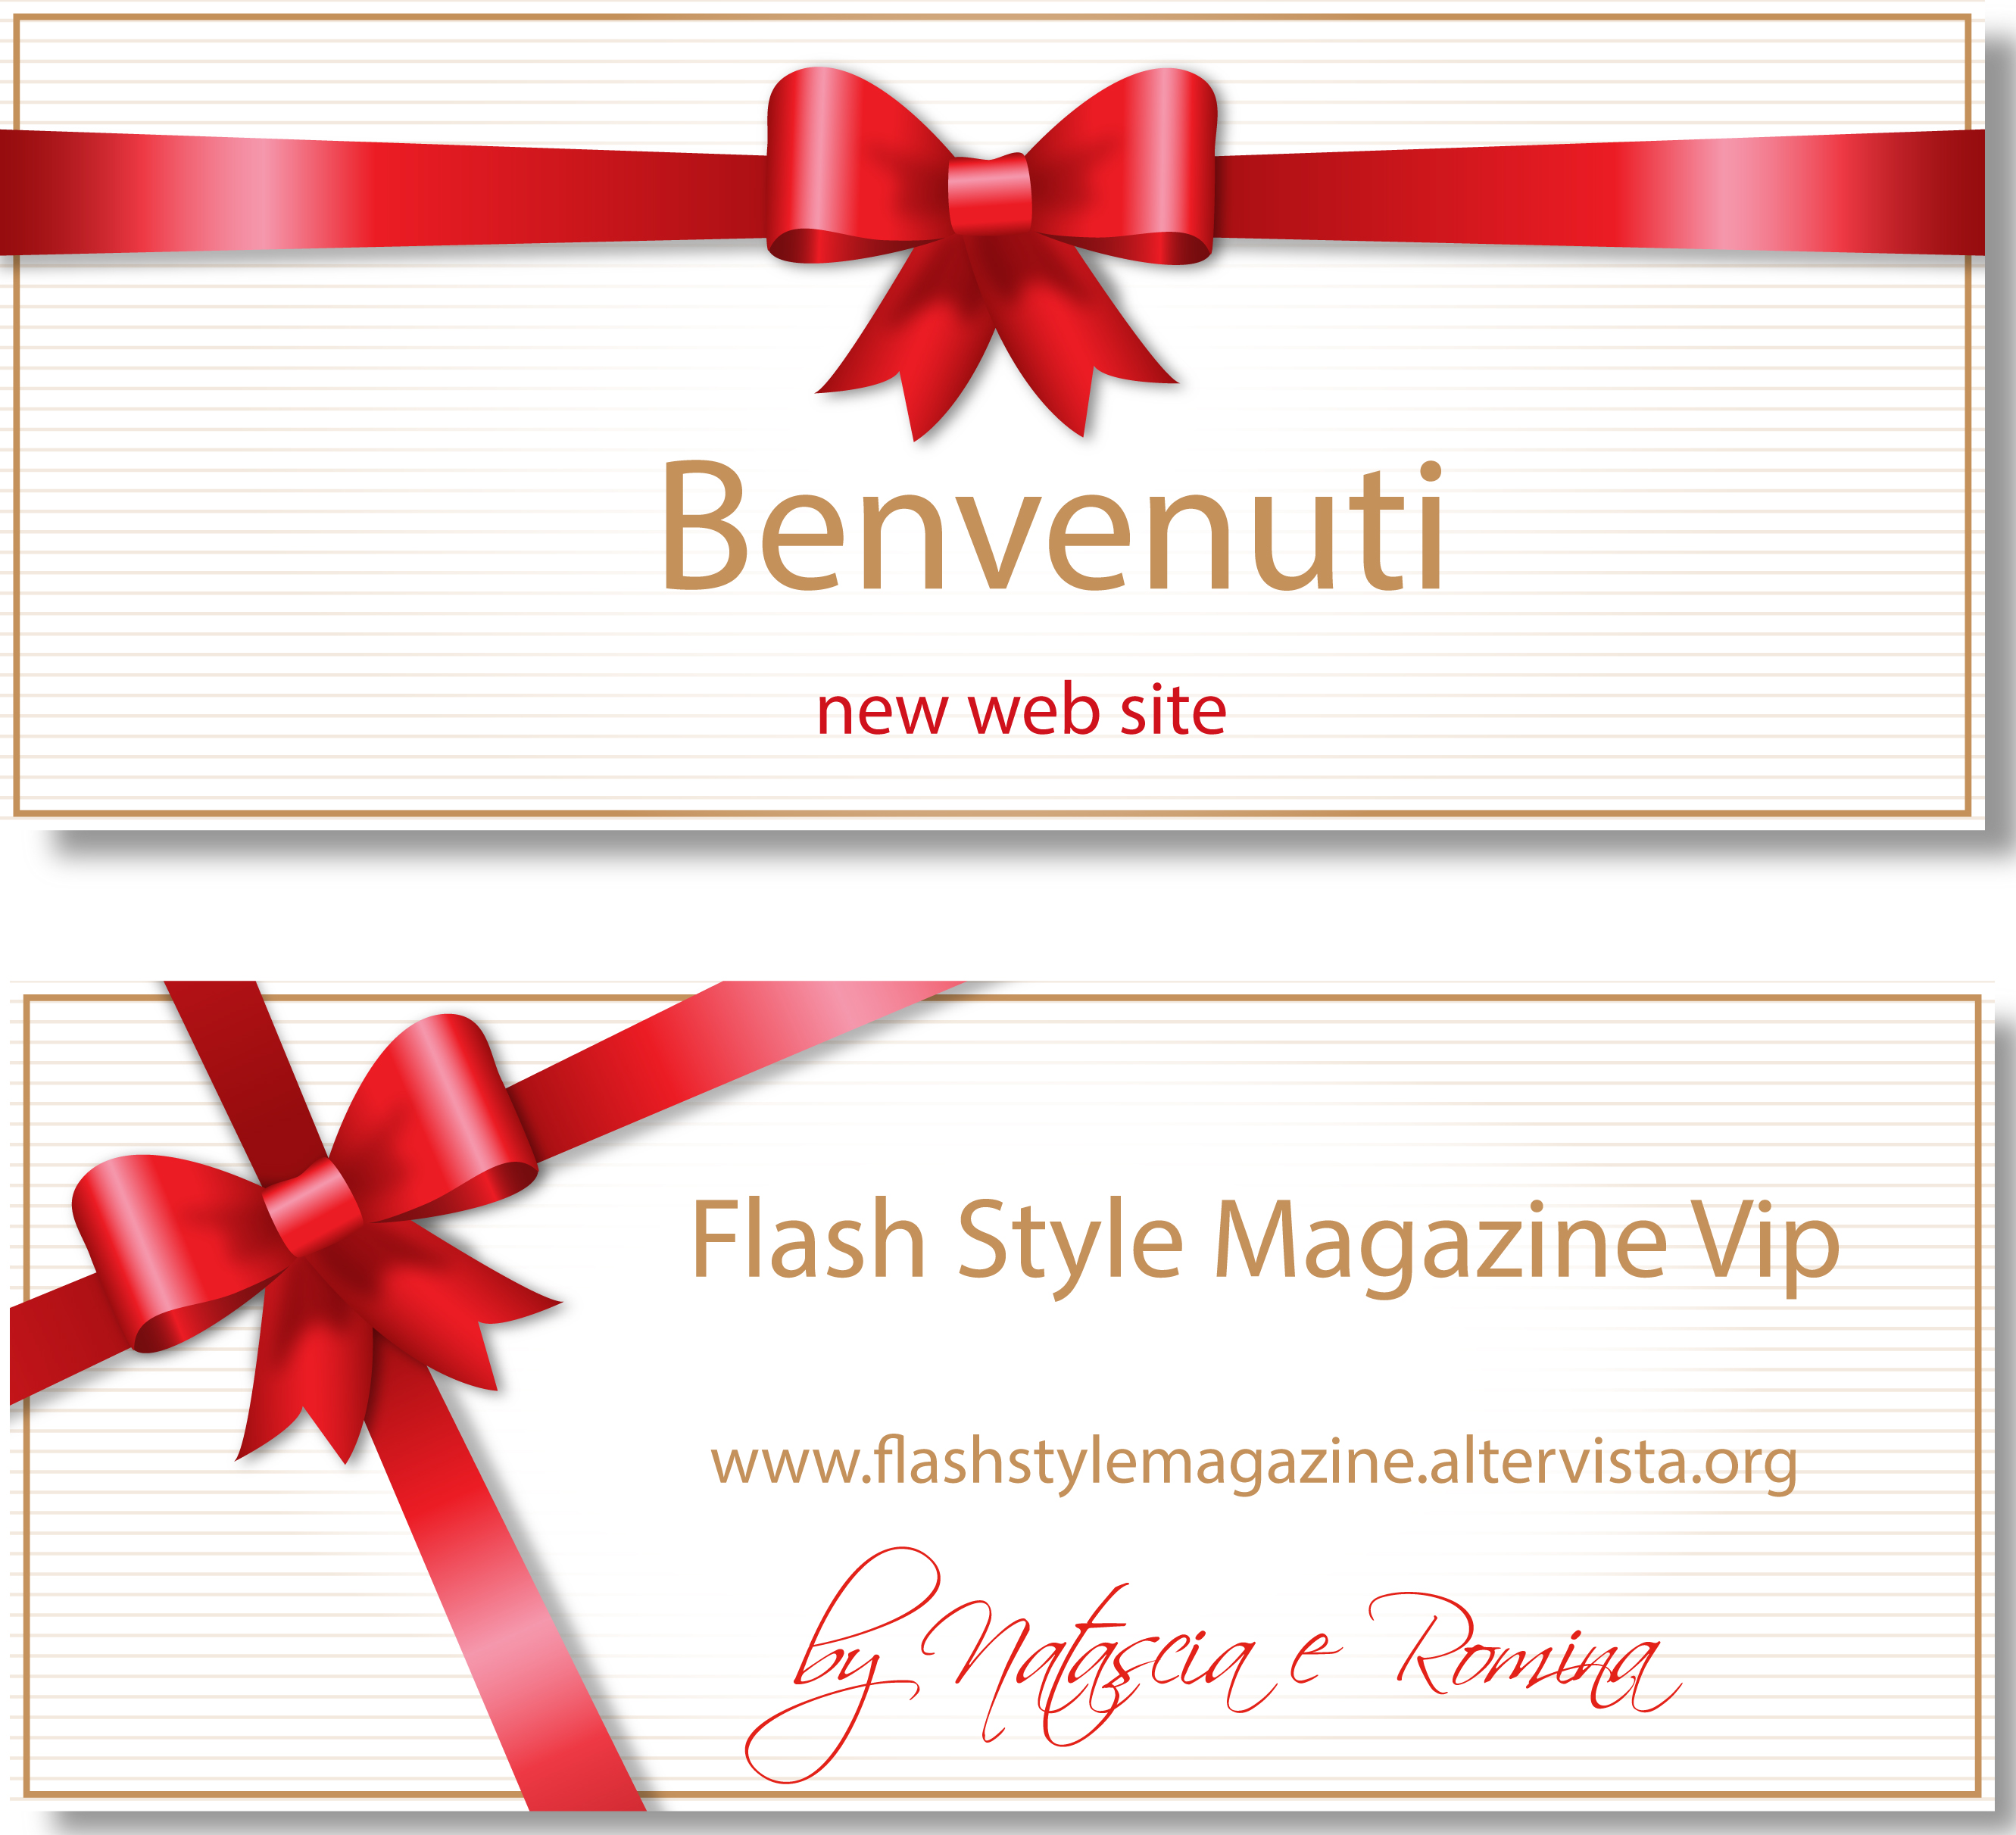 Benvenuti welcome nuovo Flash Style